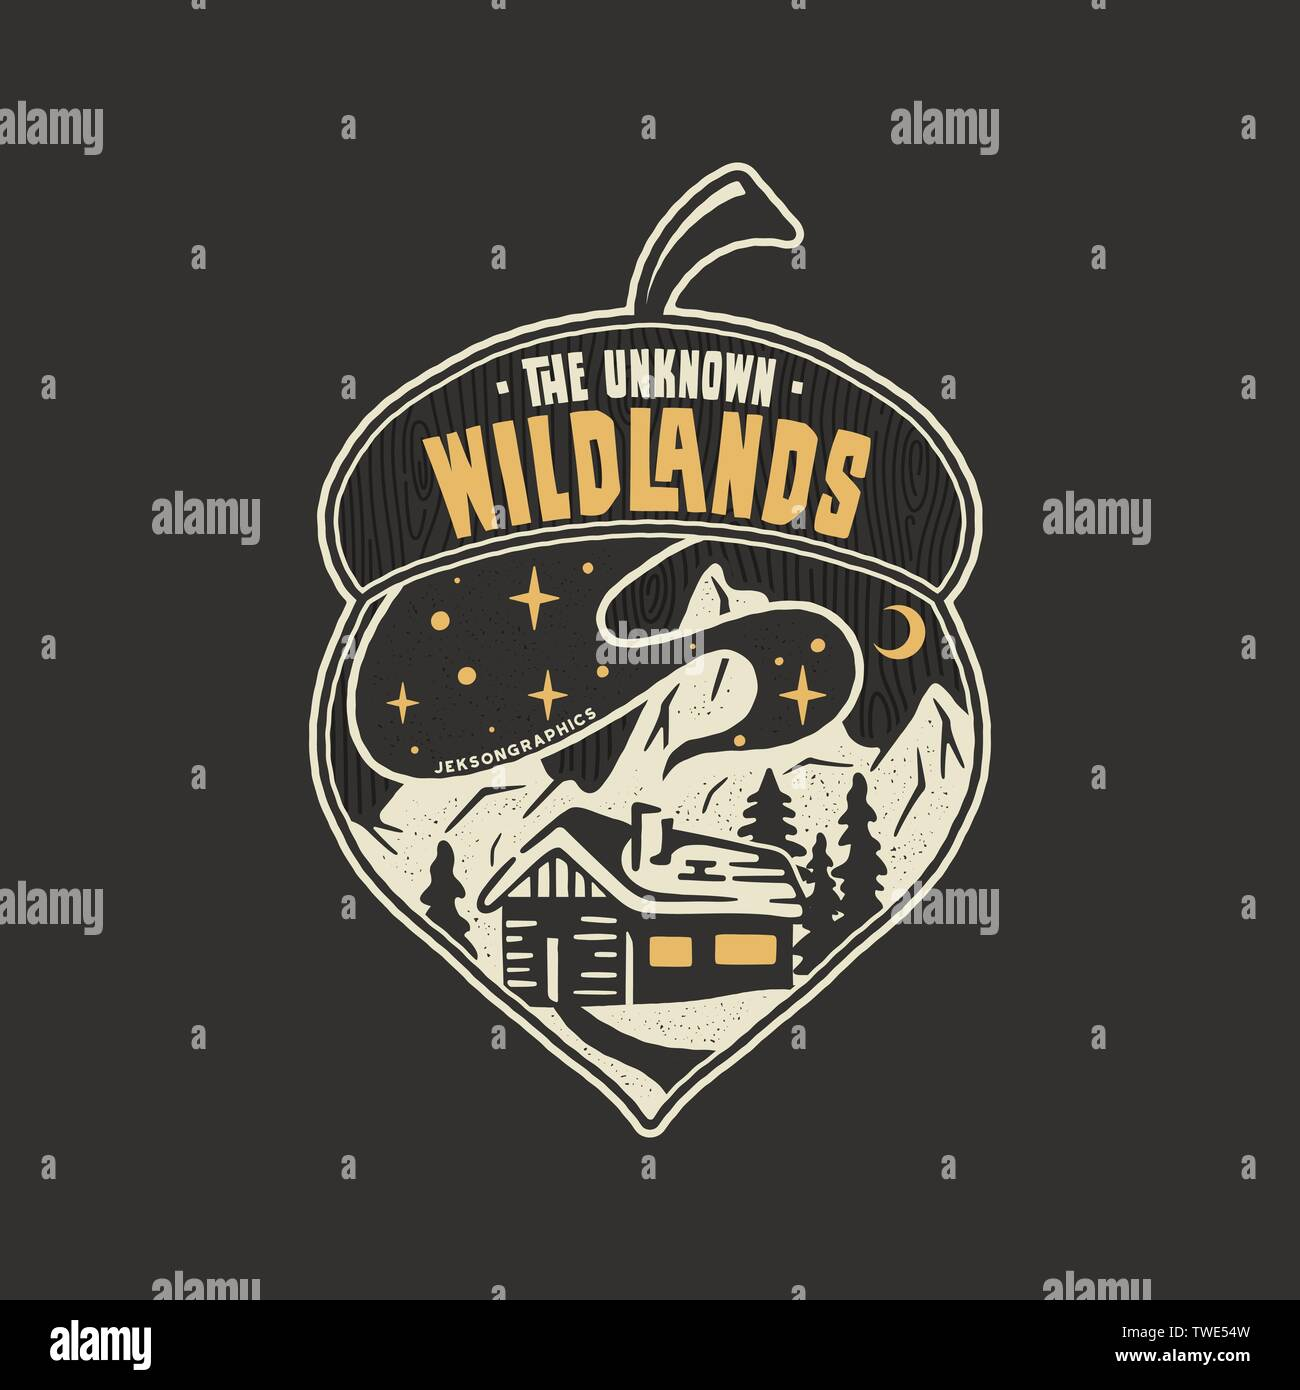 Camping badge acorn illustration design. Outdoor logo with quote - The unknown wildlands, for t shirt. Included retro mountains, woods house. Unusual - Stock Vector